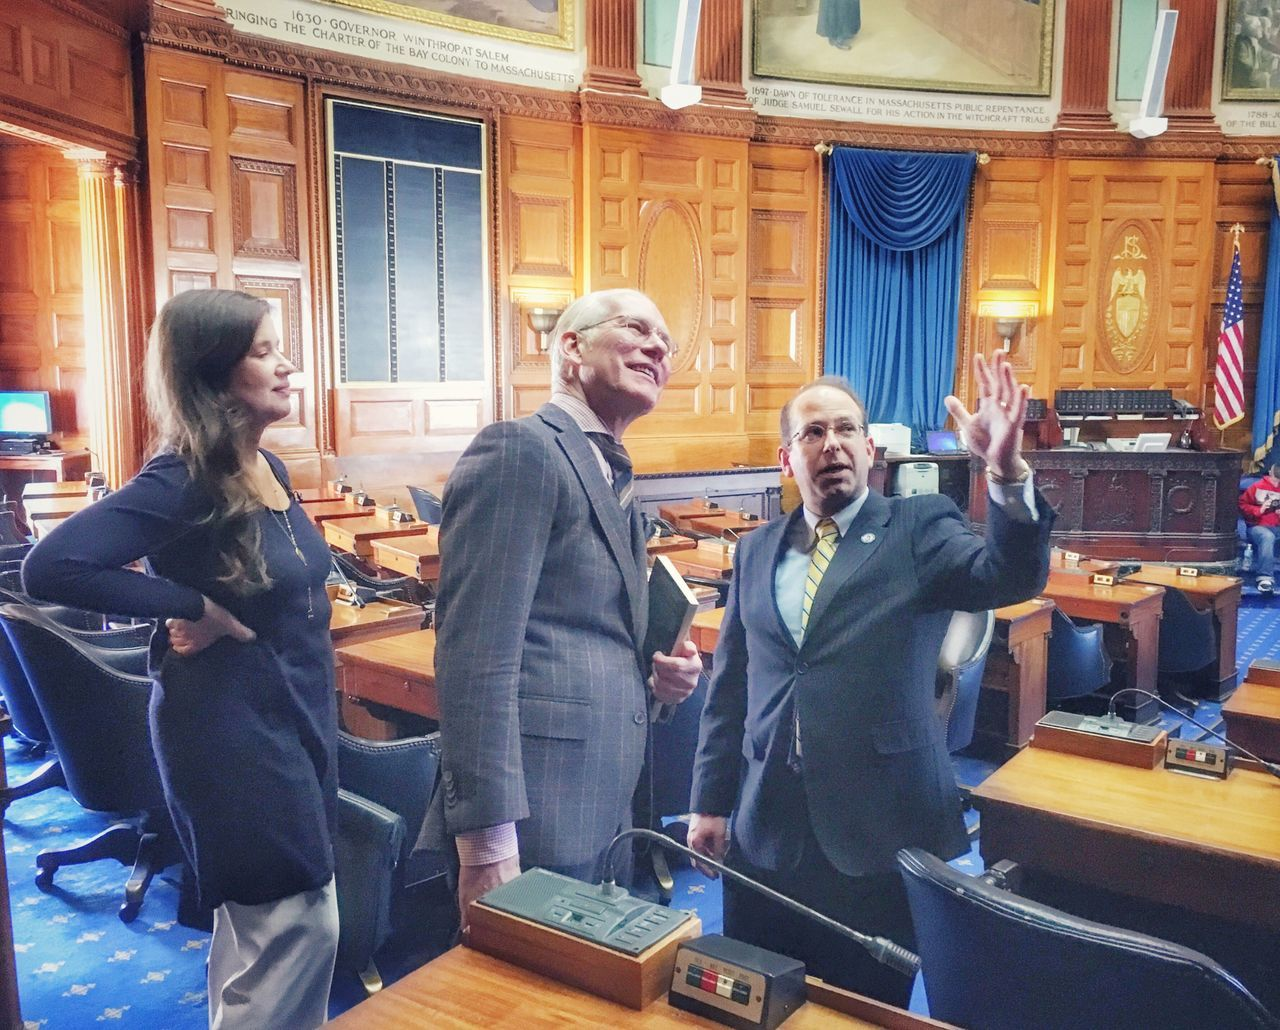 Tim Gunn & Kathryn Hilderbrand touring the Boston State House with Rep. David T. Vieira after the forum on the bill to legalize industrial hemp growing and manufacturing in Massachusetts Hempinmassachusetts Hemp Legislation Massachusetts ShotoniPhone6s Boston Tim Gunn Making History